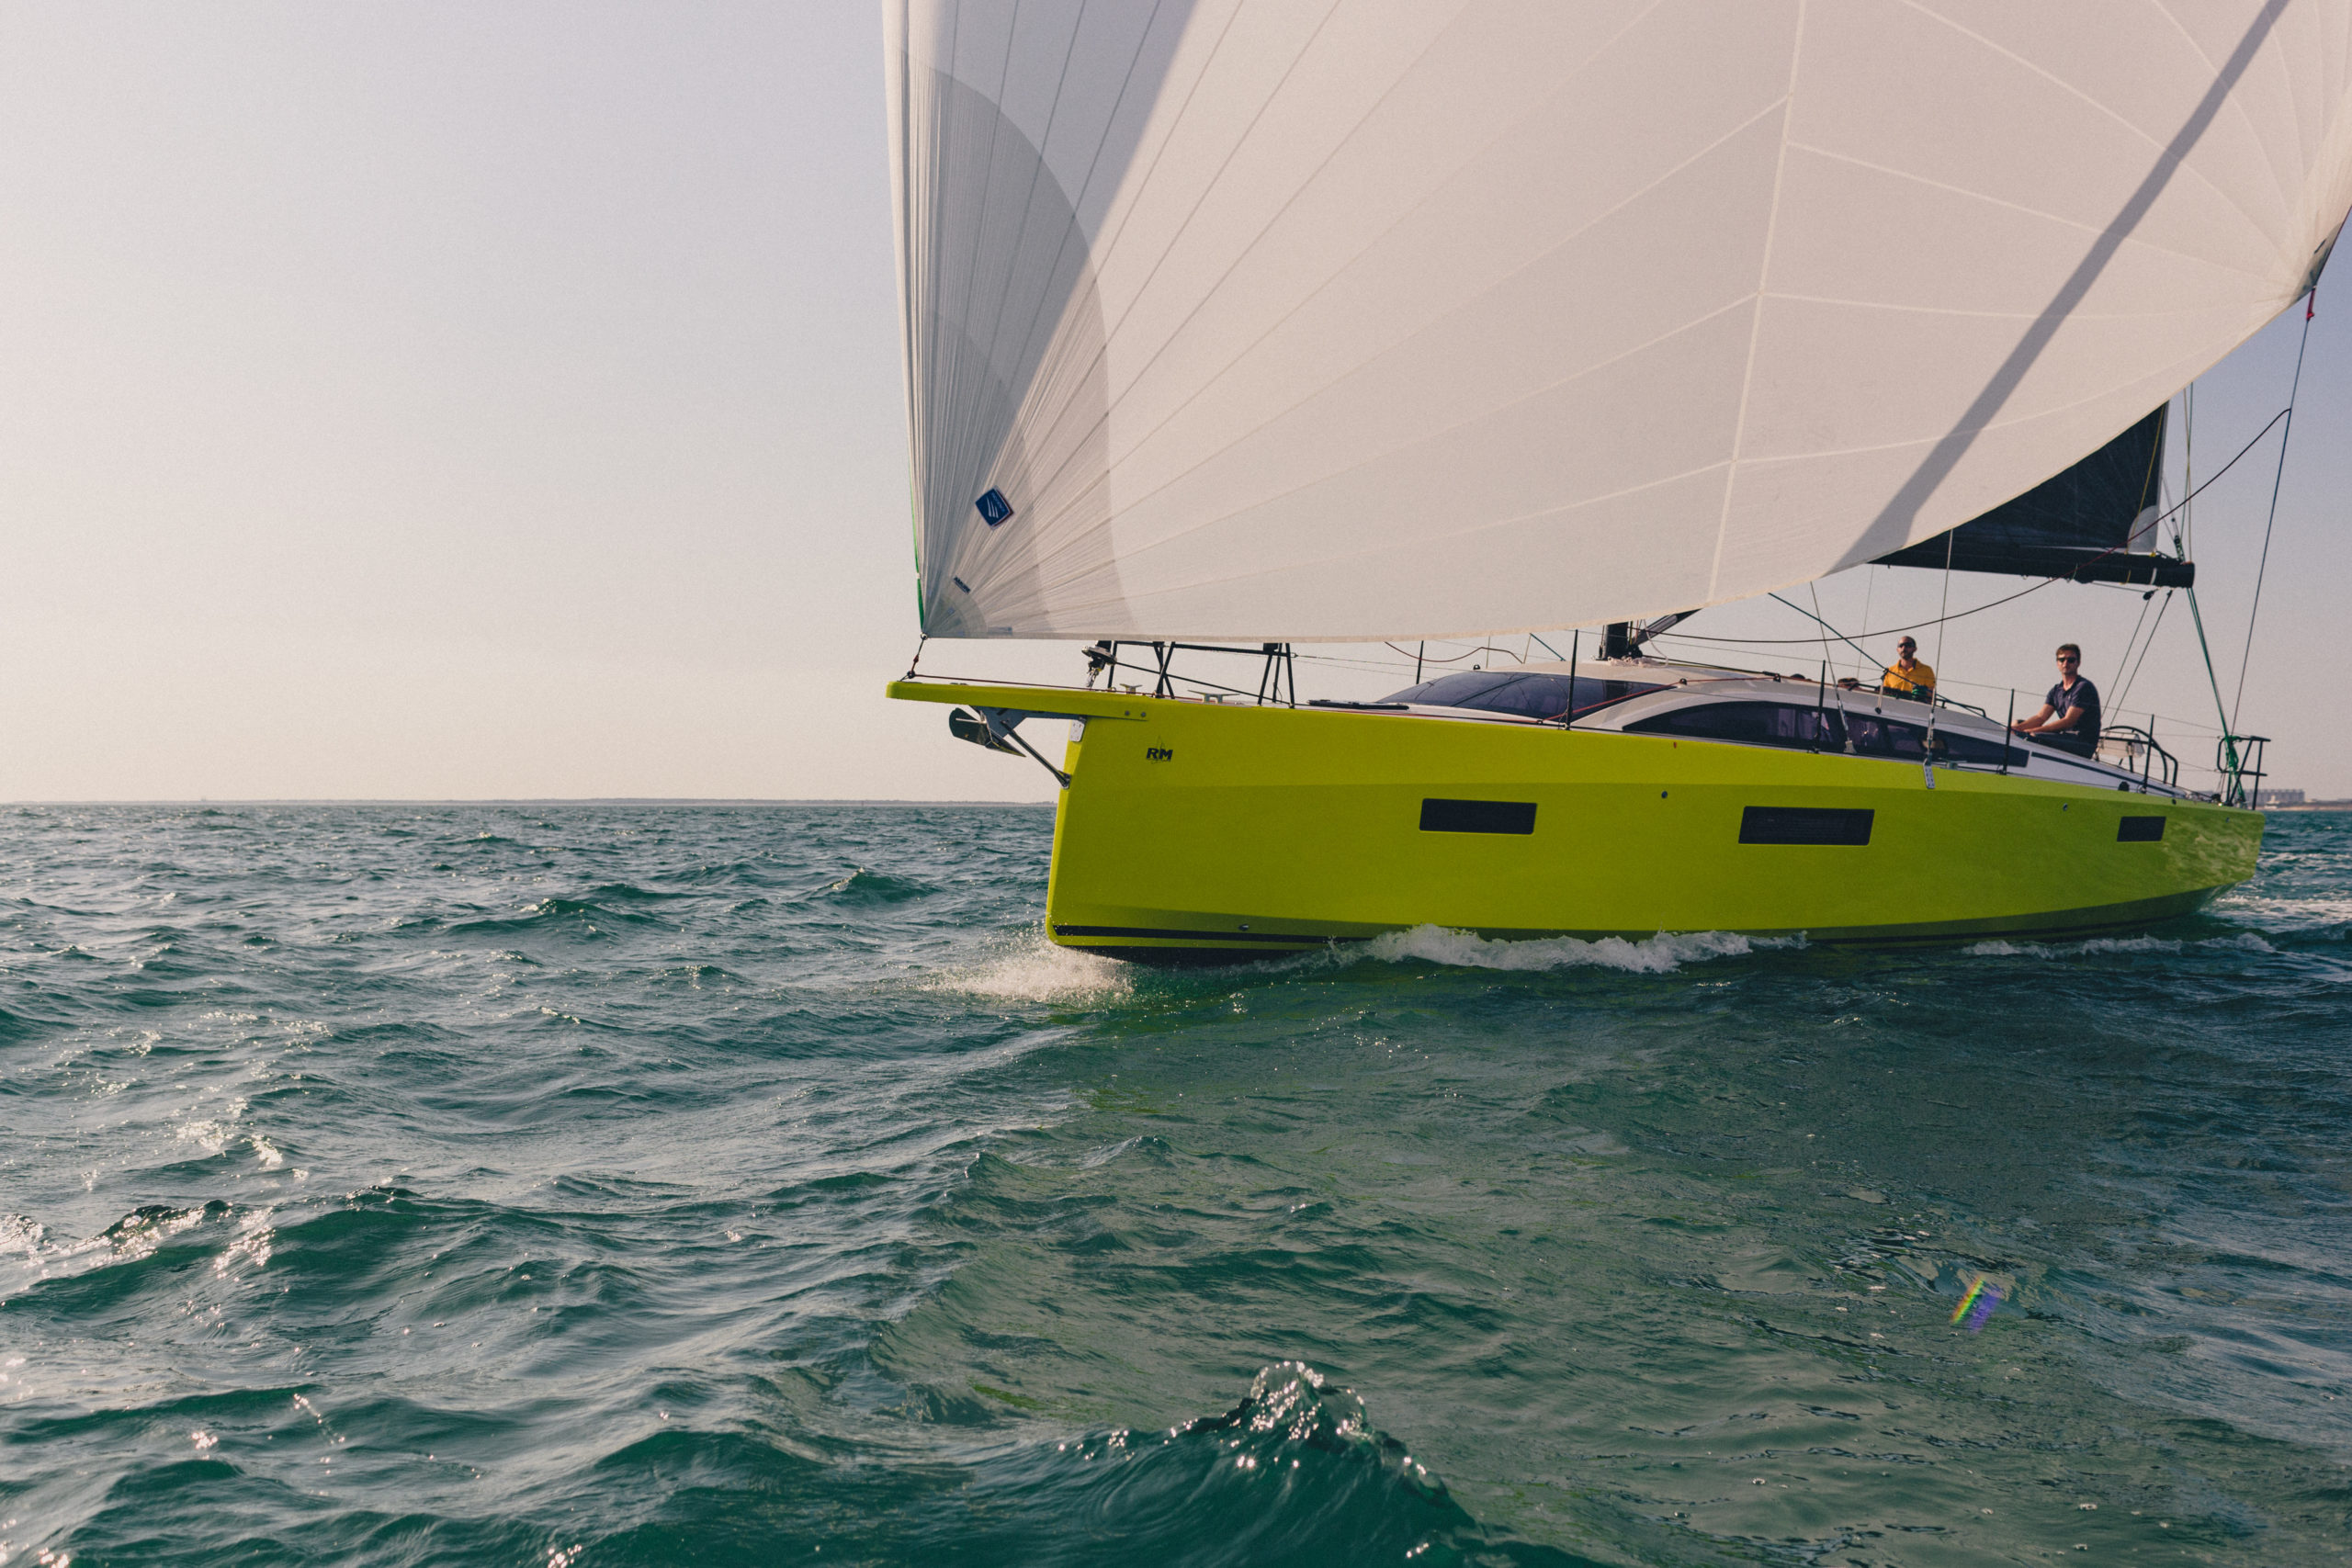 Toby Hodges, Yachting World